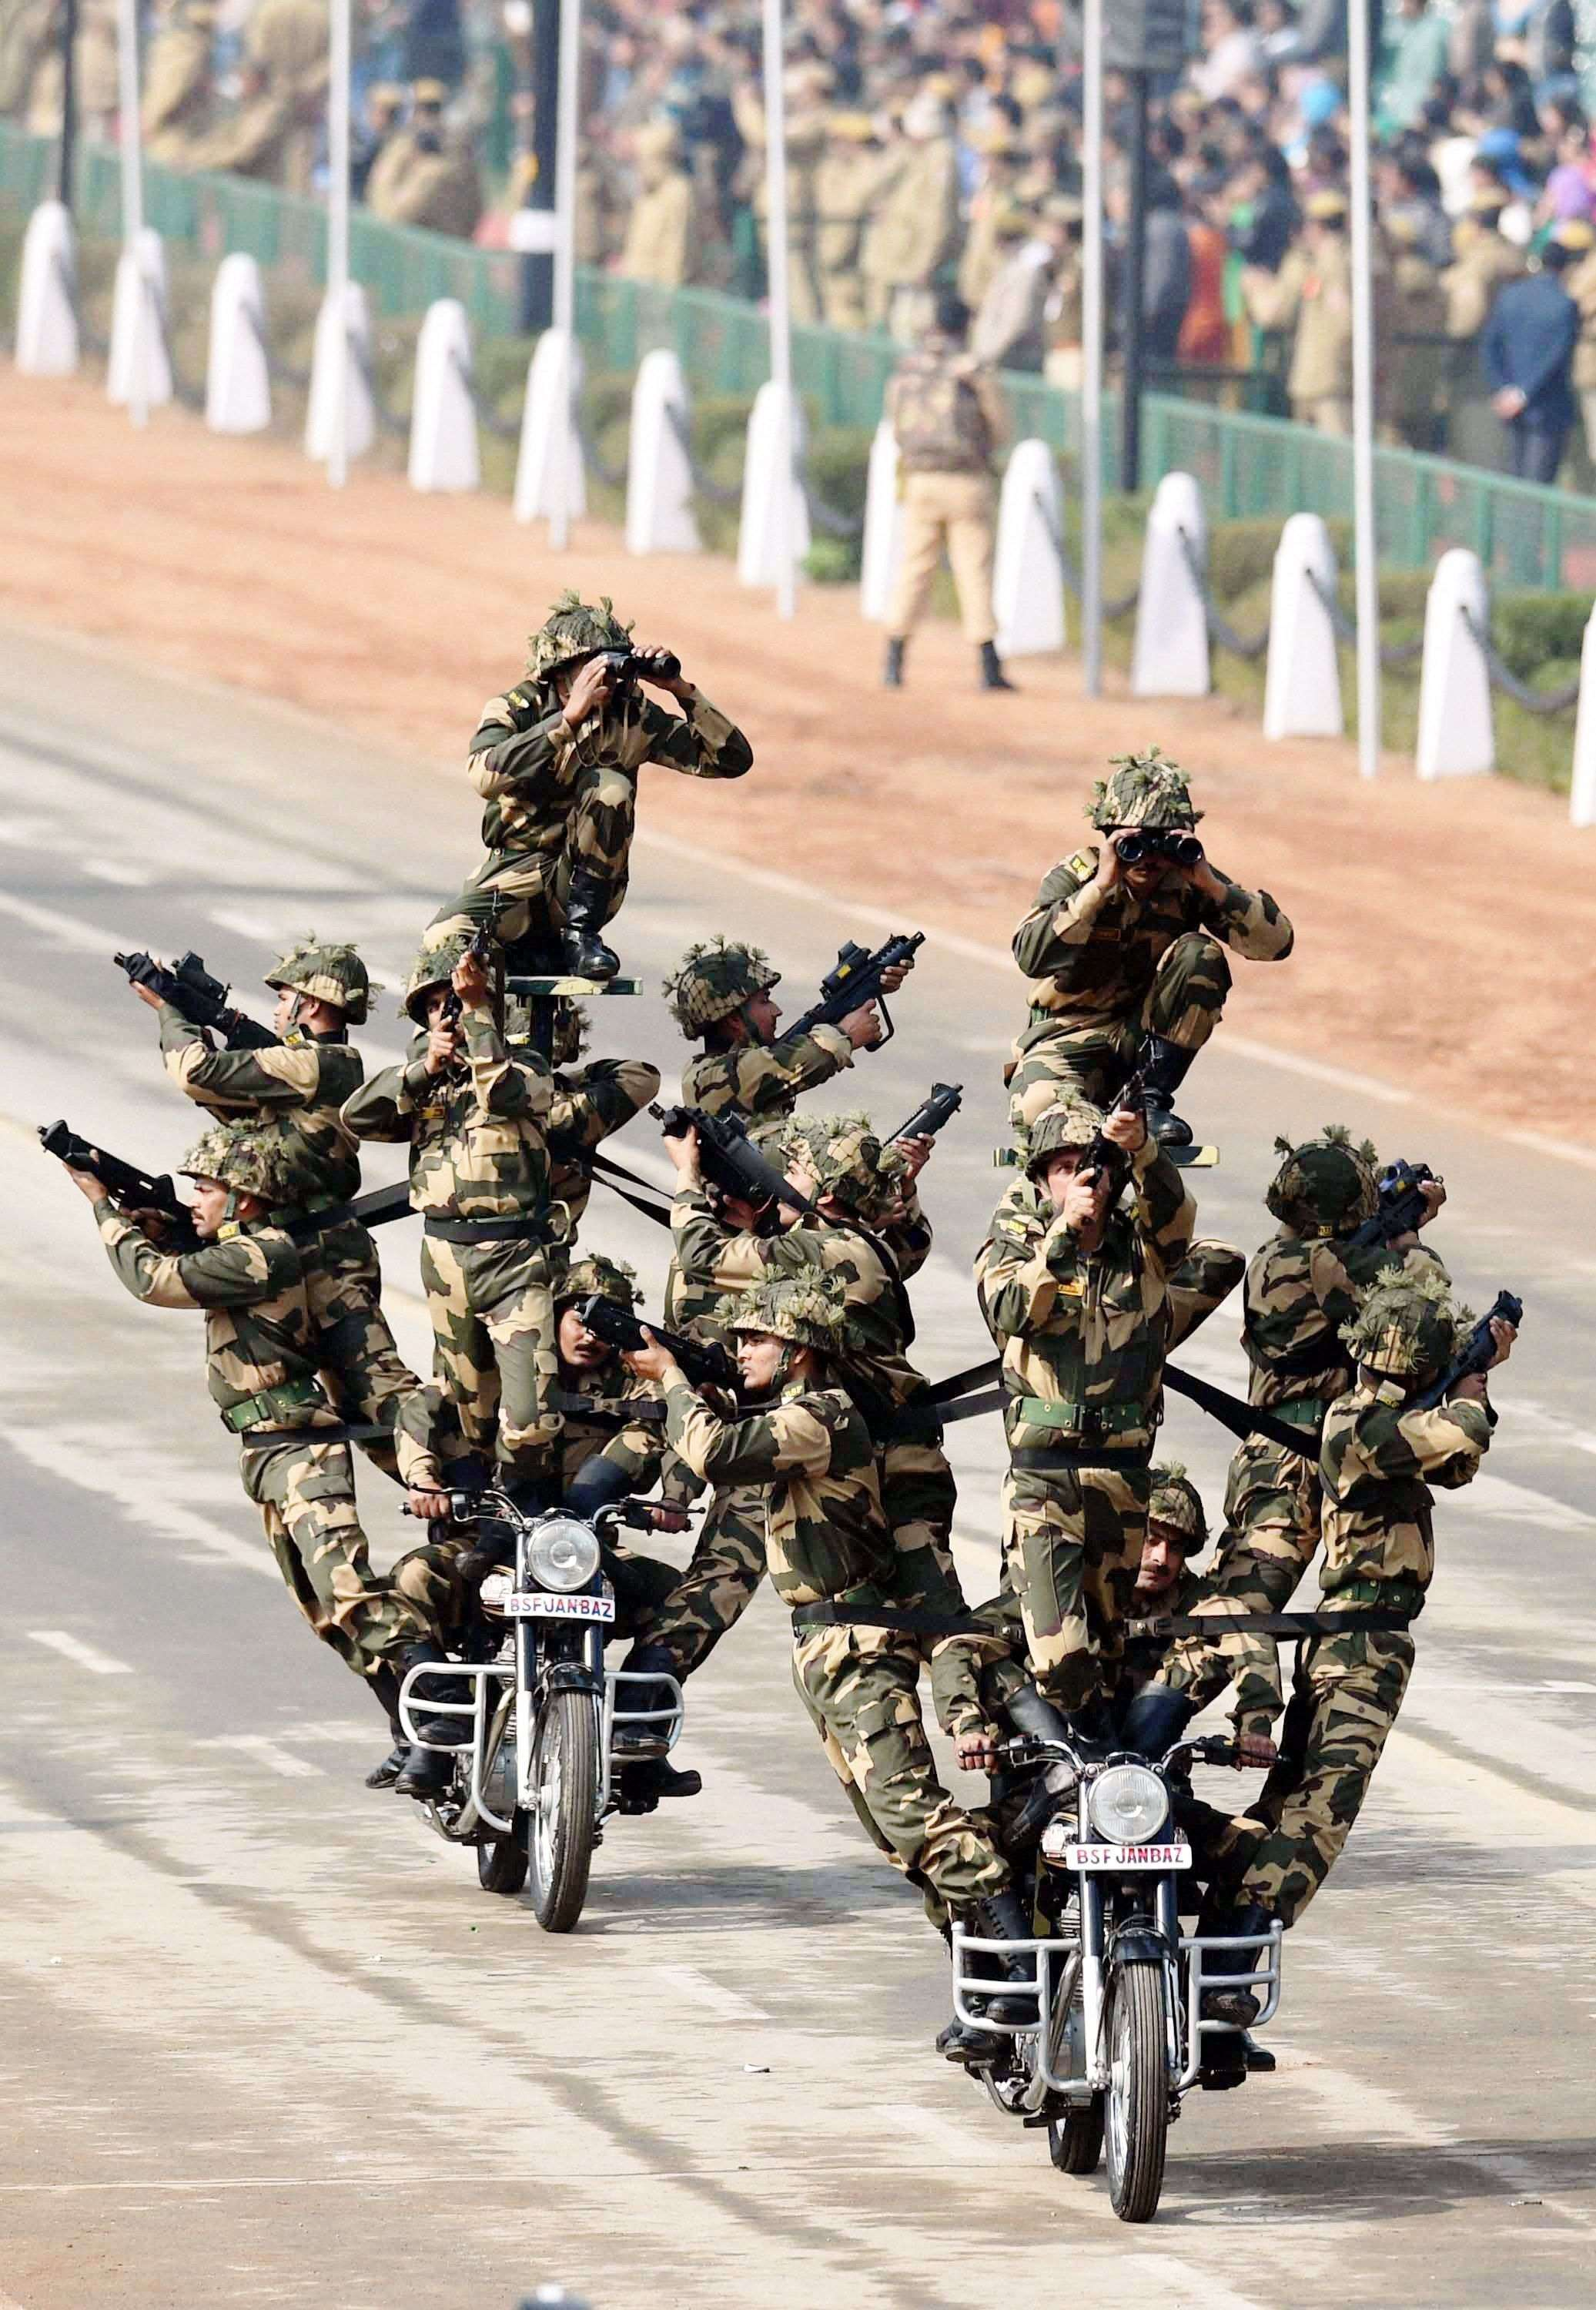 BSF daredevils during the full dress rehearsal for the Republic Day parade at Rajpath in New Delhi. (PTI photo by Atul Yadav)